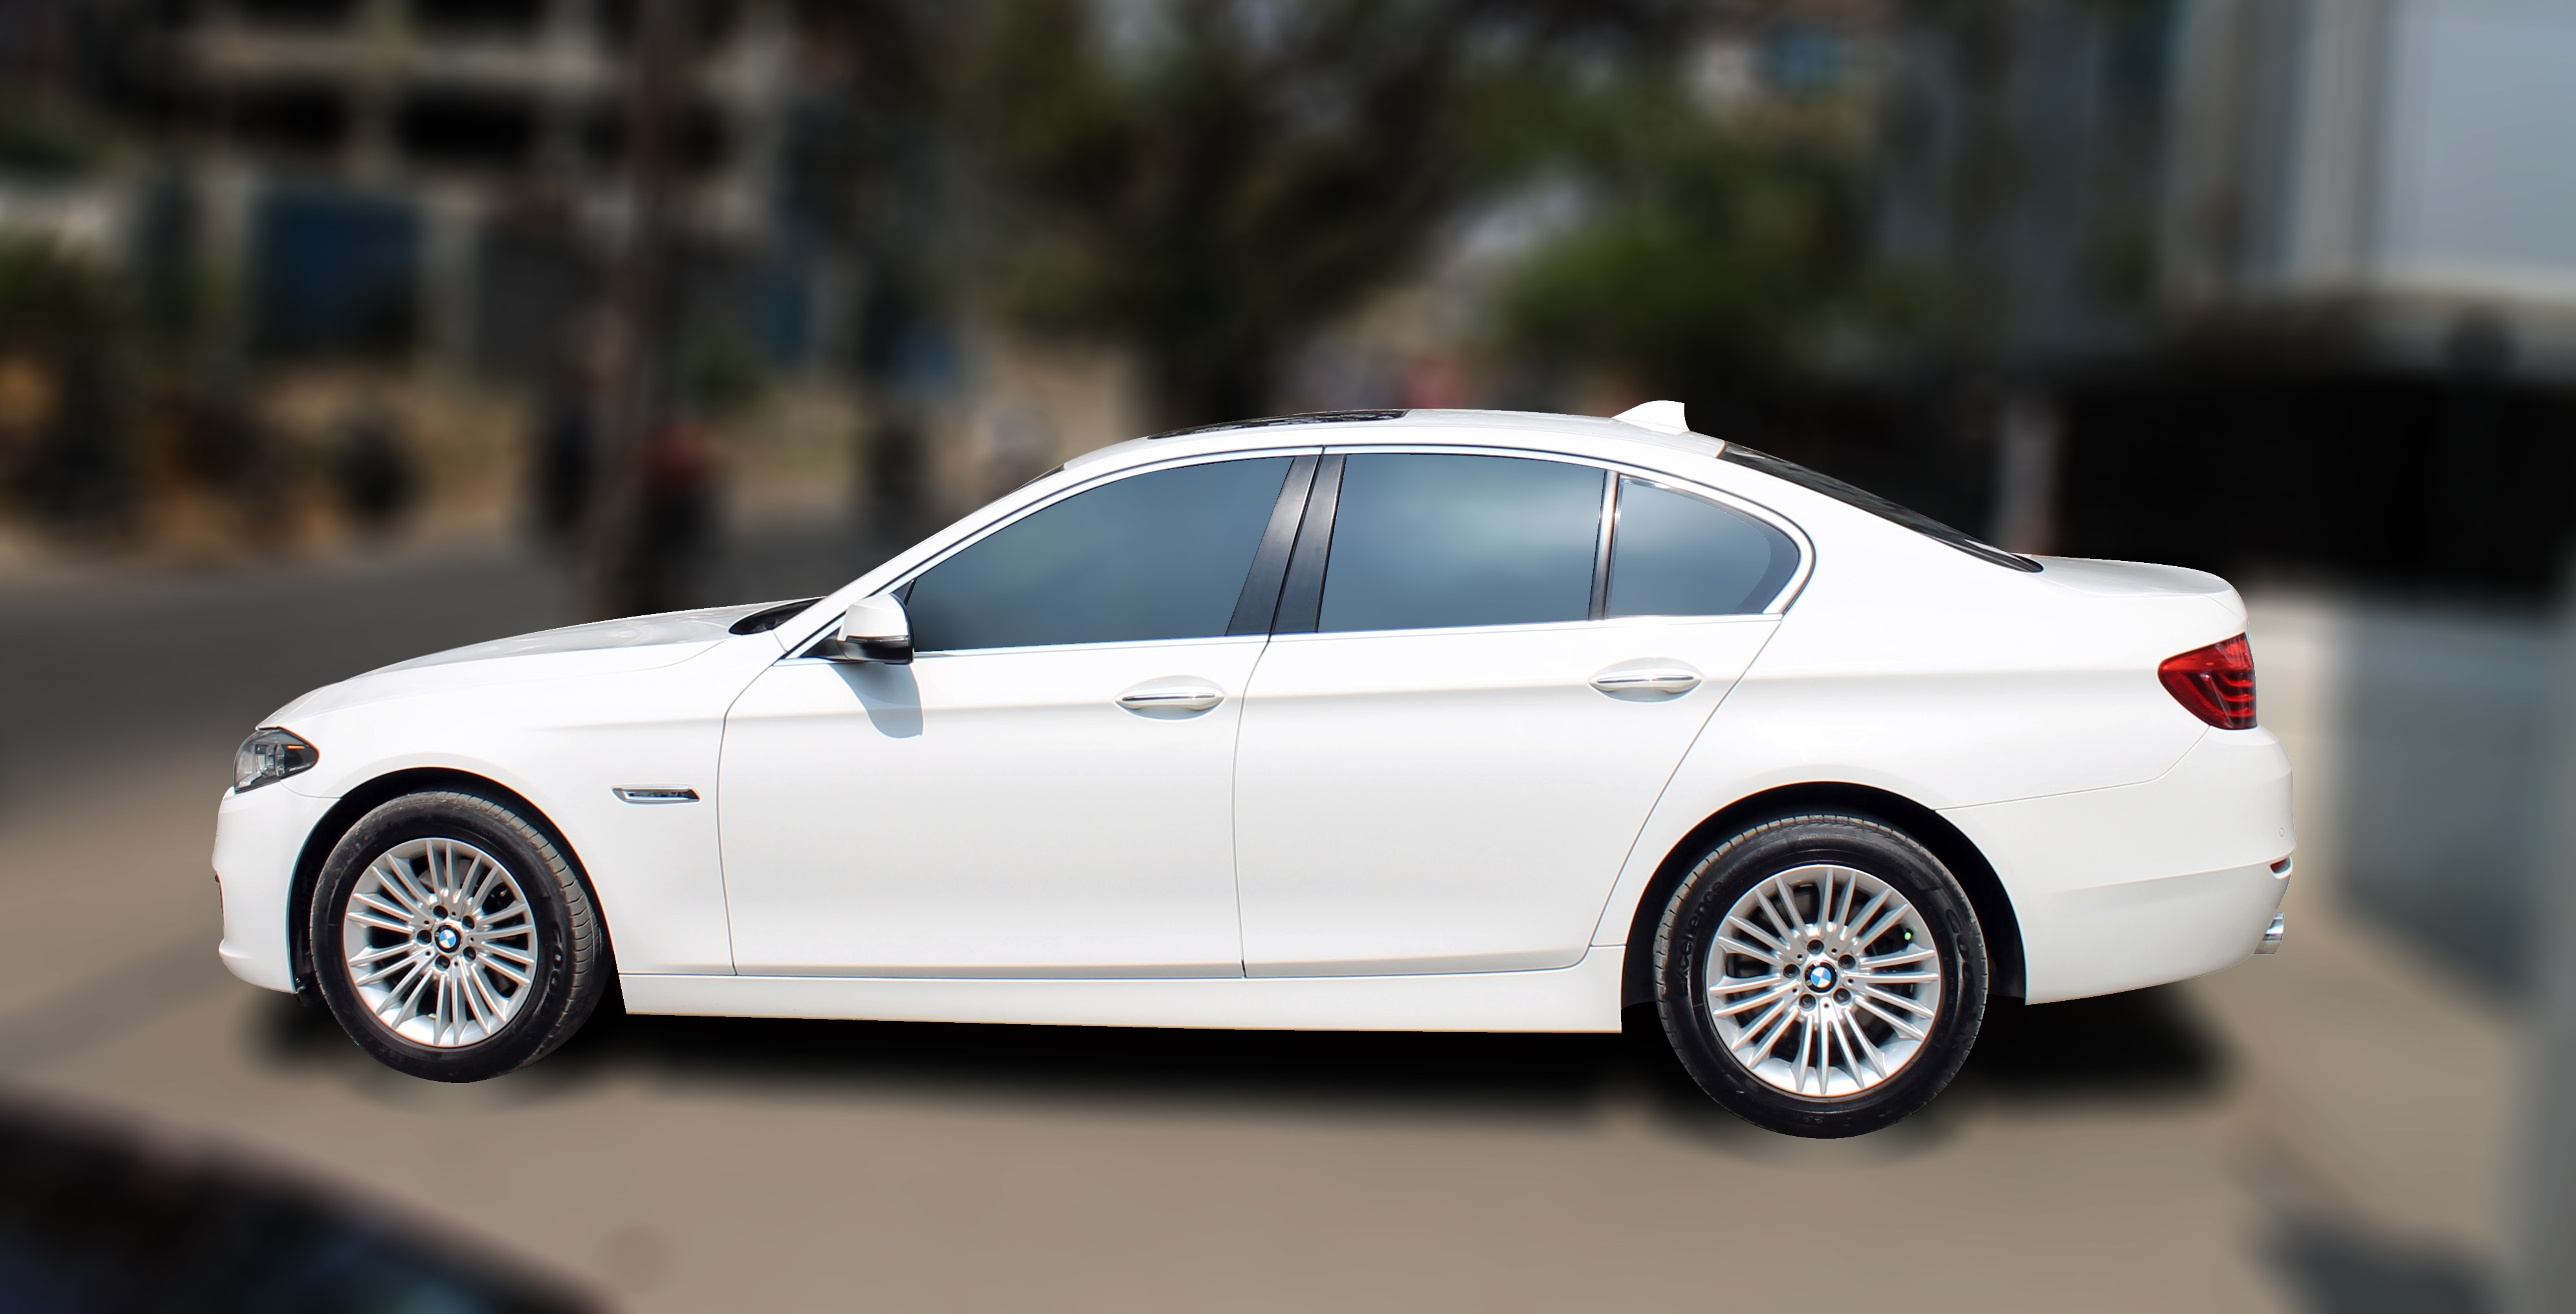 BMW 520 D ( WHITE COLOR, DIESEL), 2016 model, done only 23000km in absolute mint condition... buy now and get one year #service pack from us. For further info call 7569696666. visit us @ www.vasantmotors.in